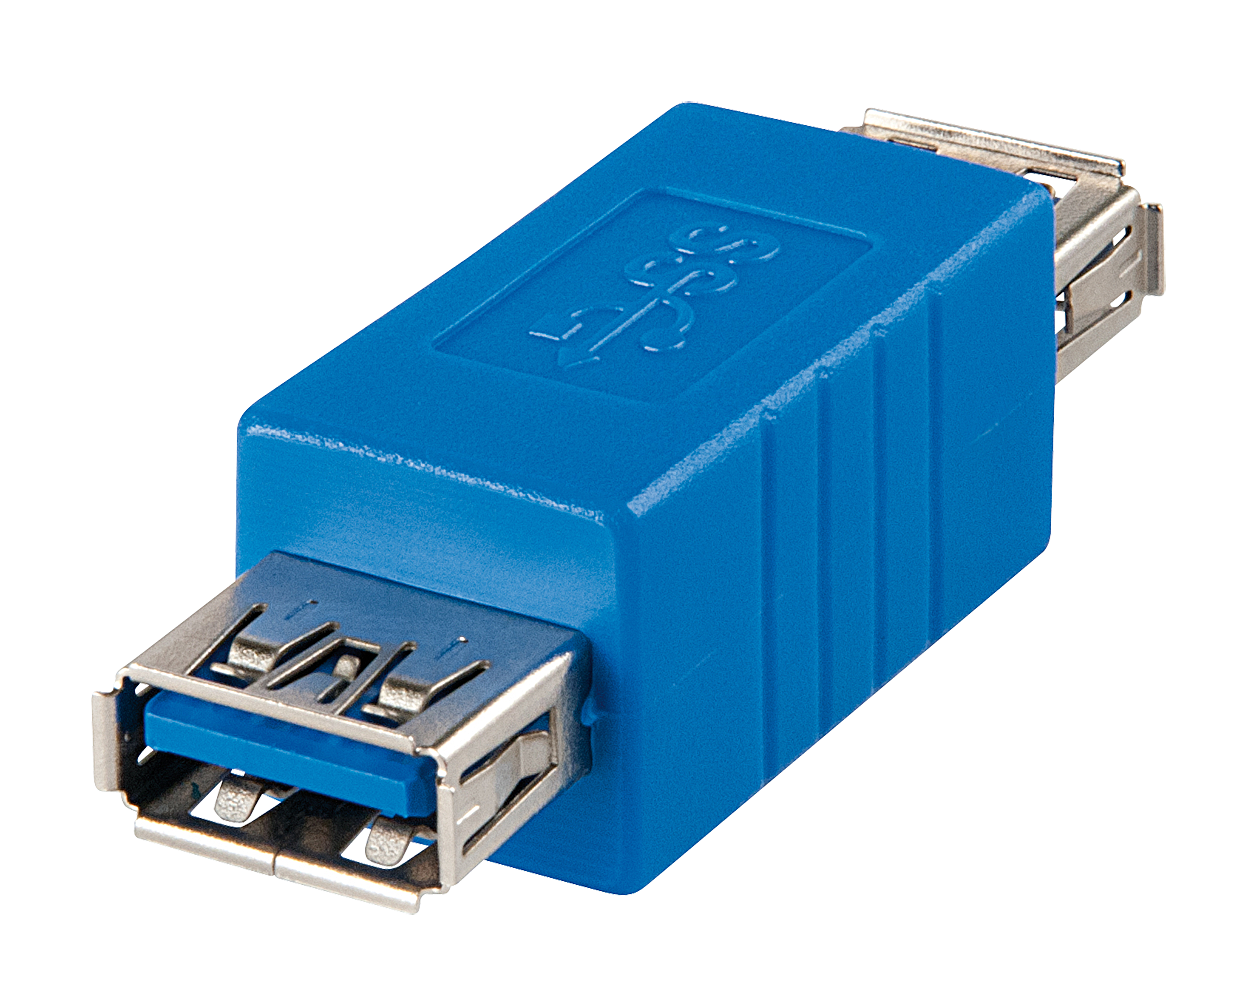 USB 3.0 Adapter